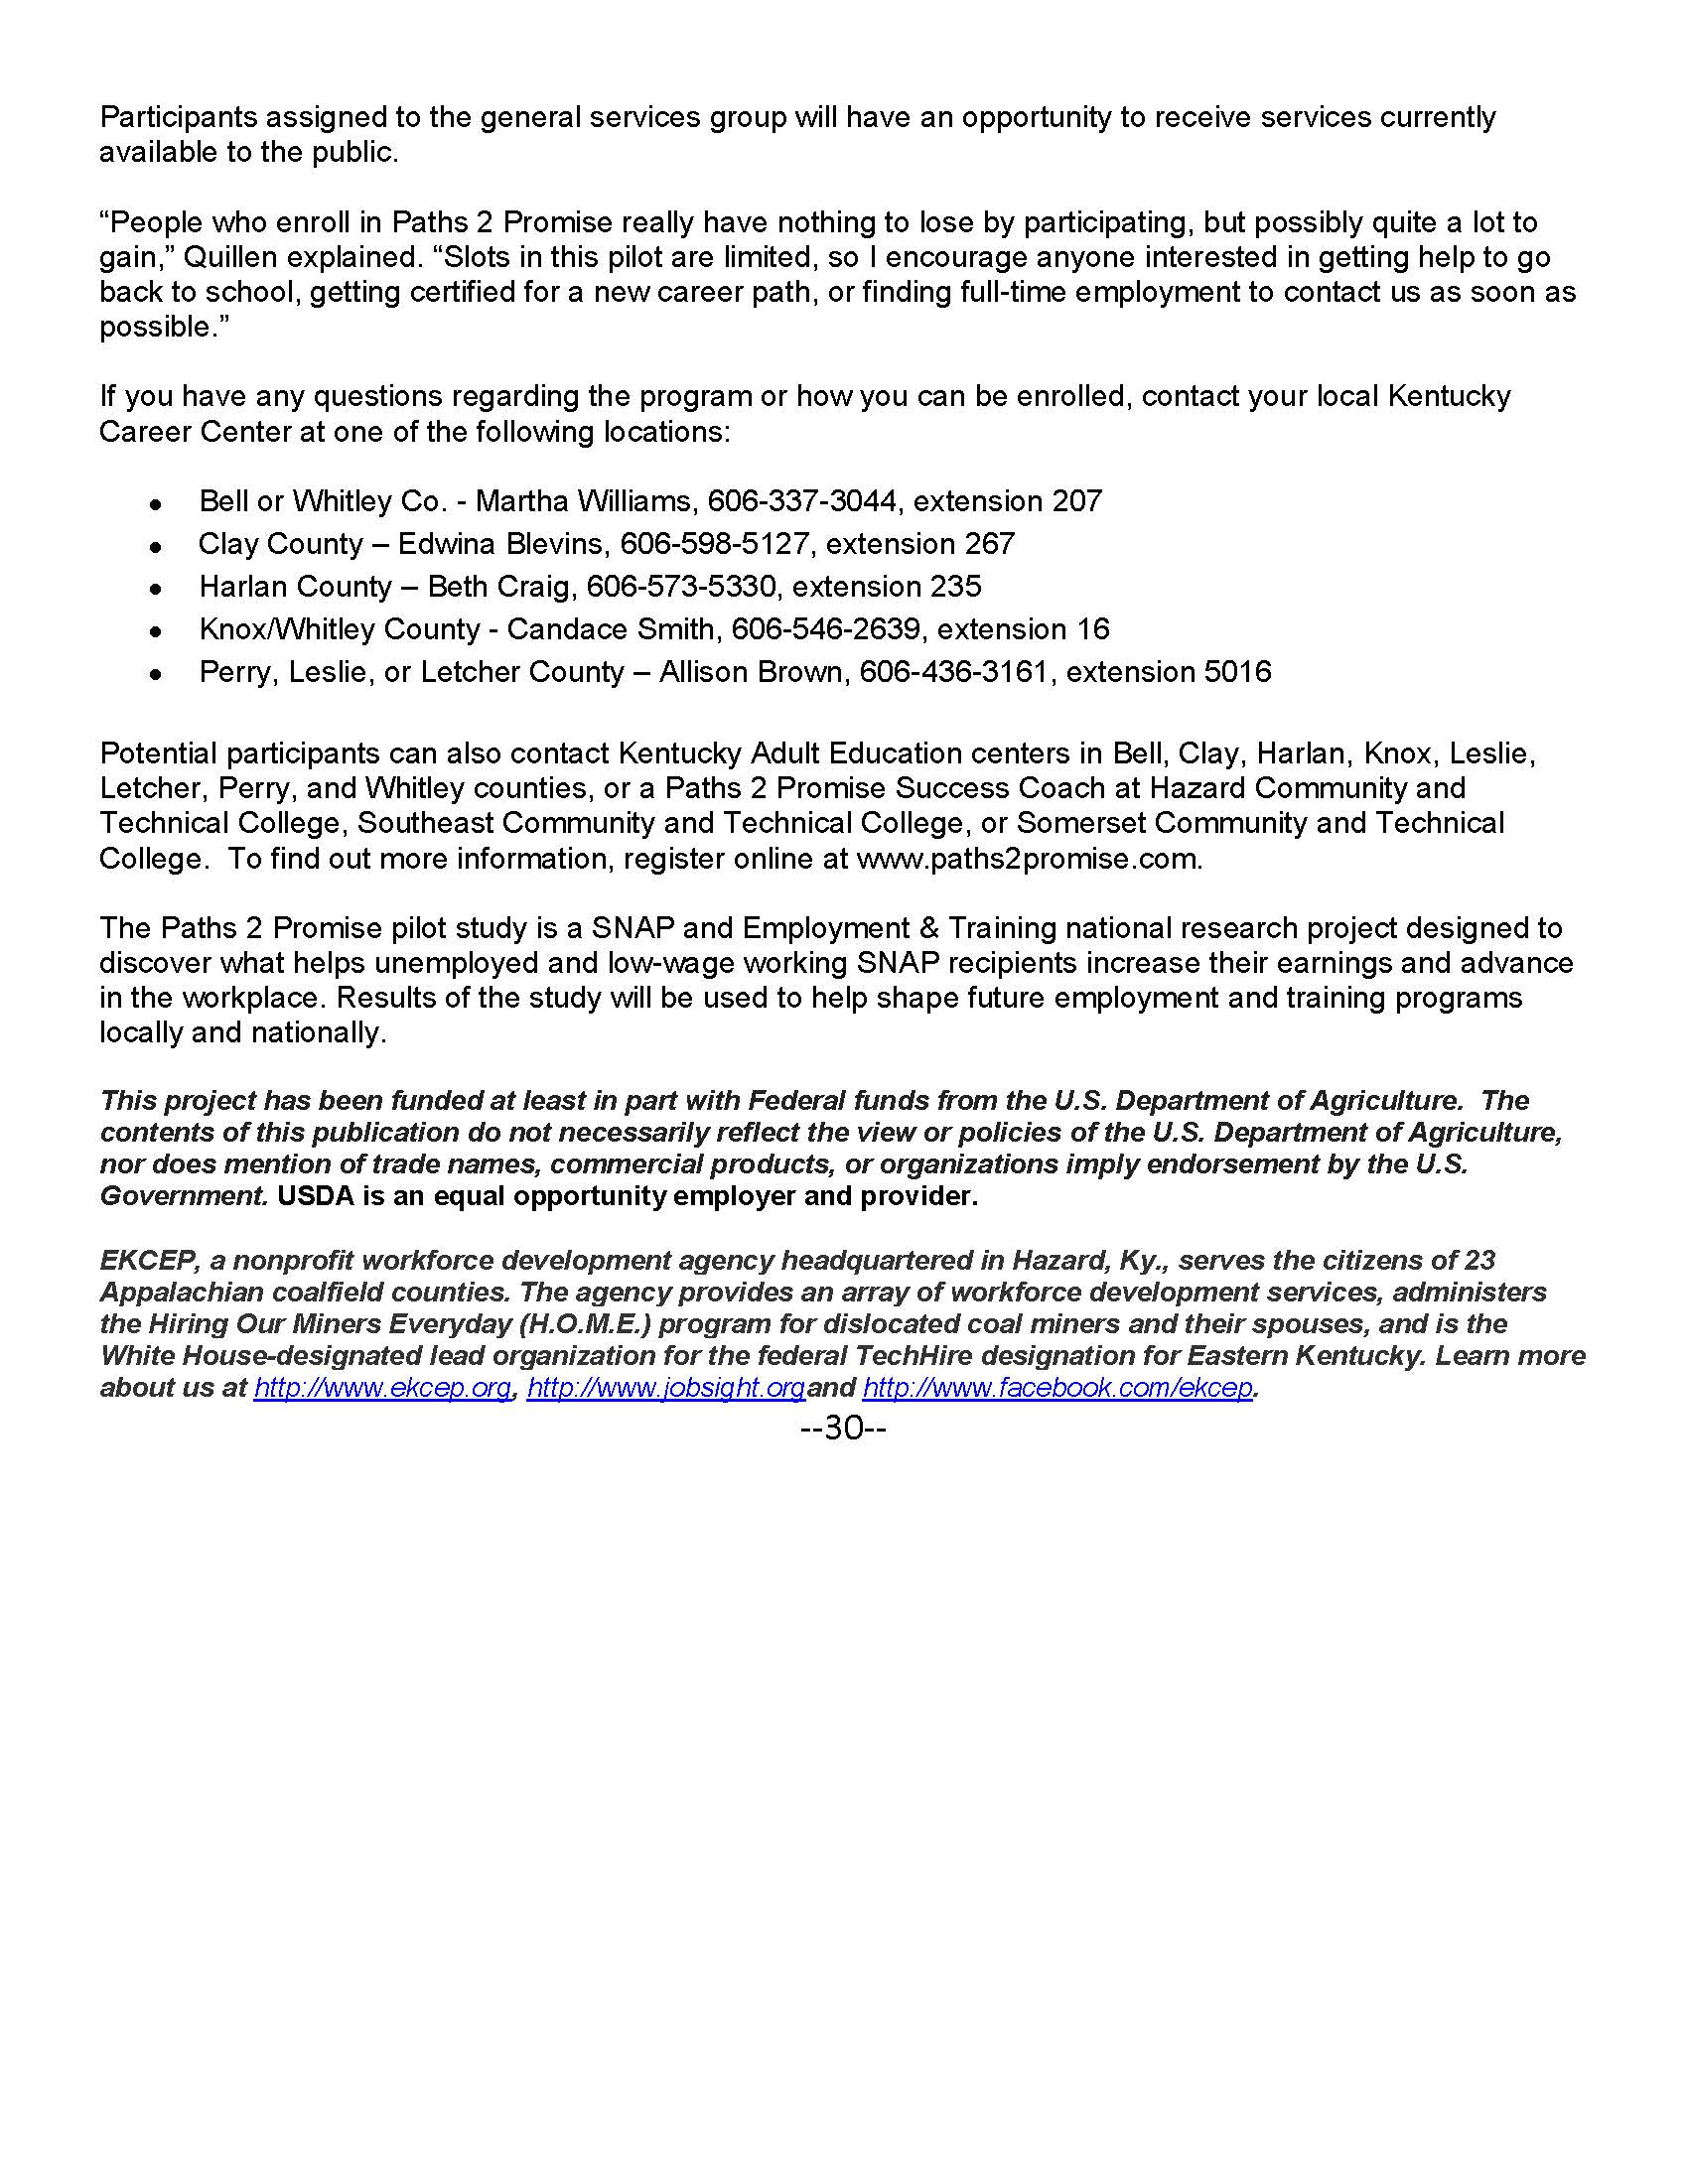 Paths 2 Promise Press Release Page 2